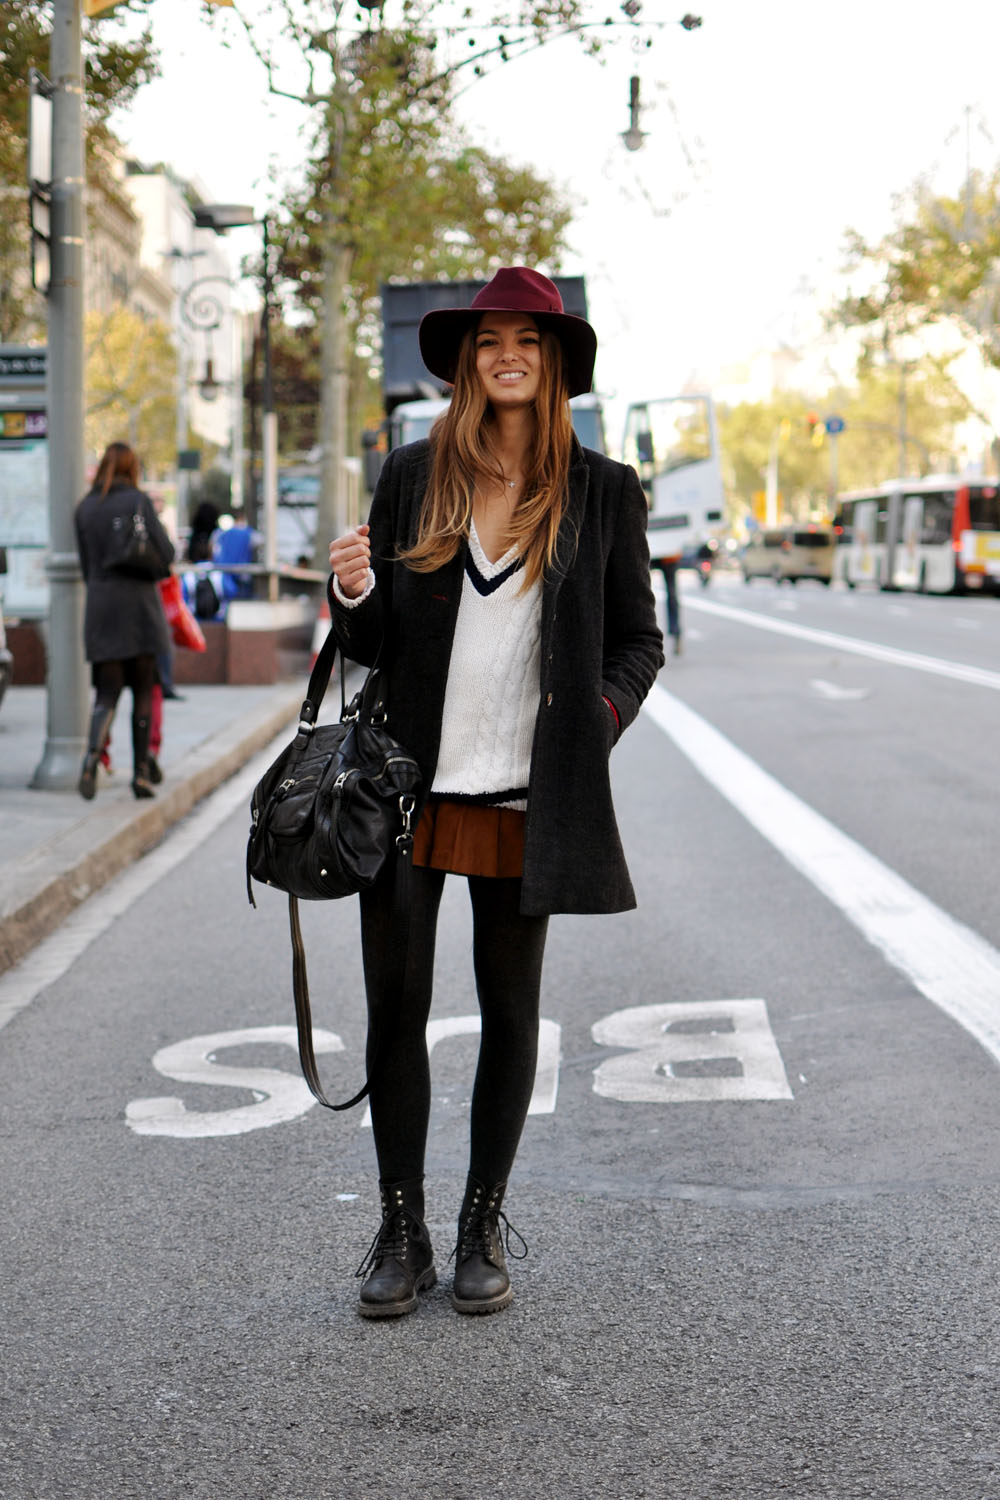 girl with hat street style in barcelona